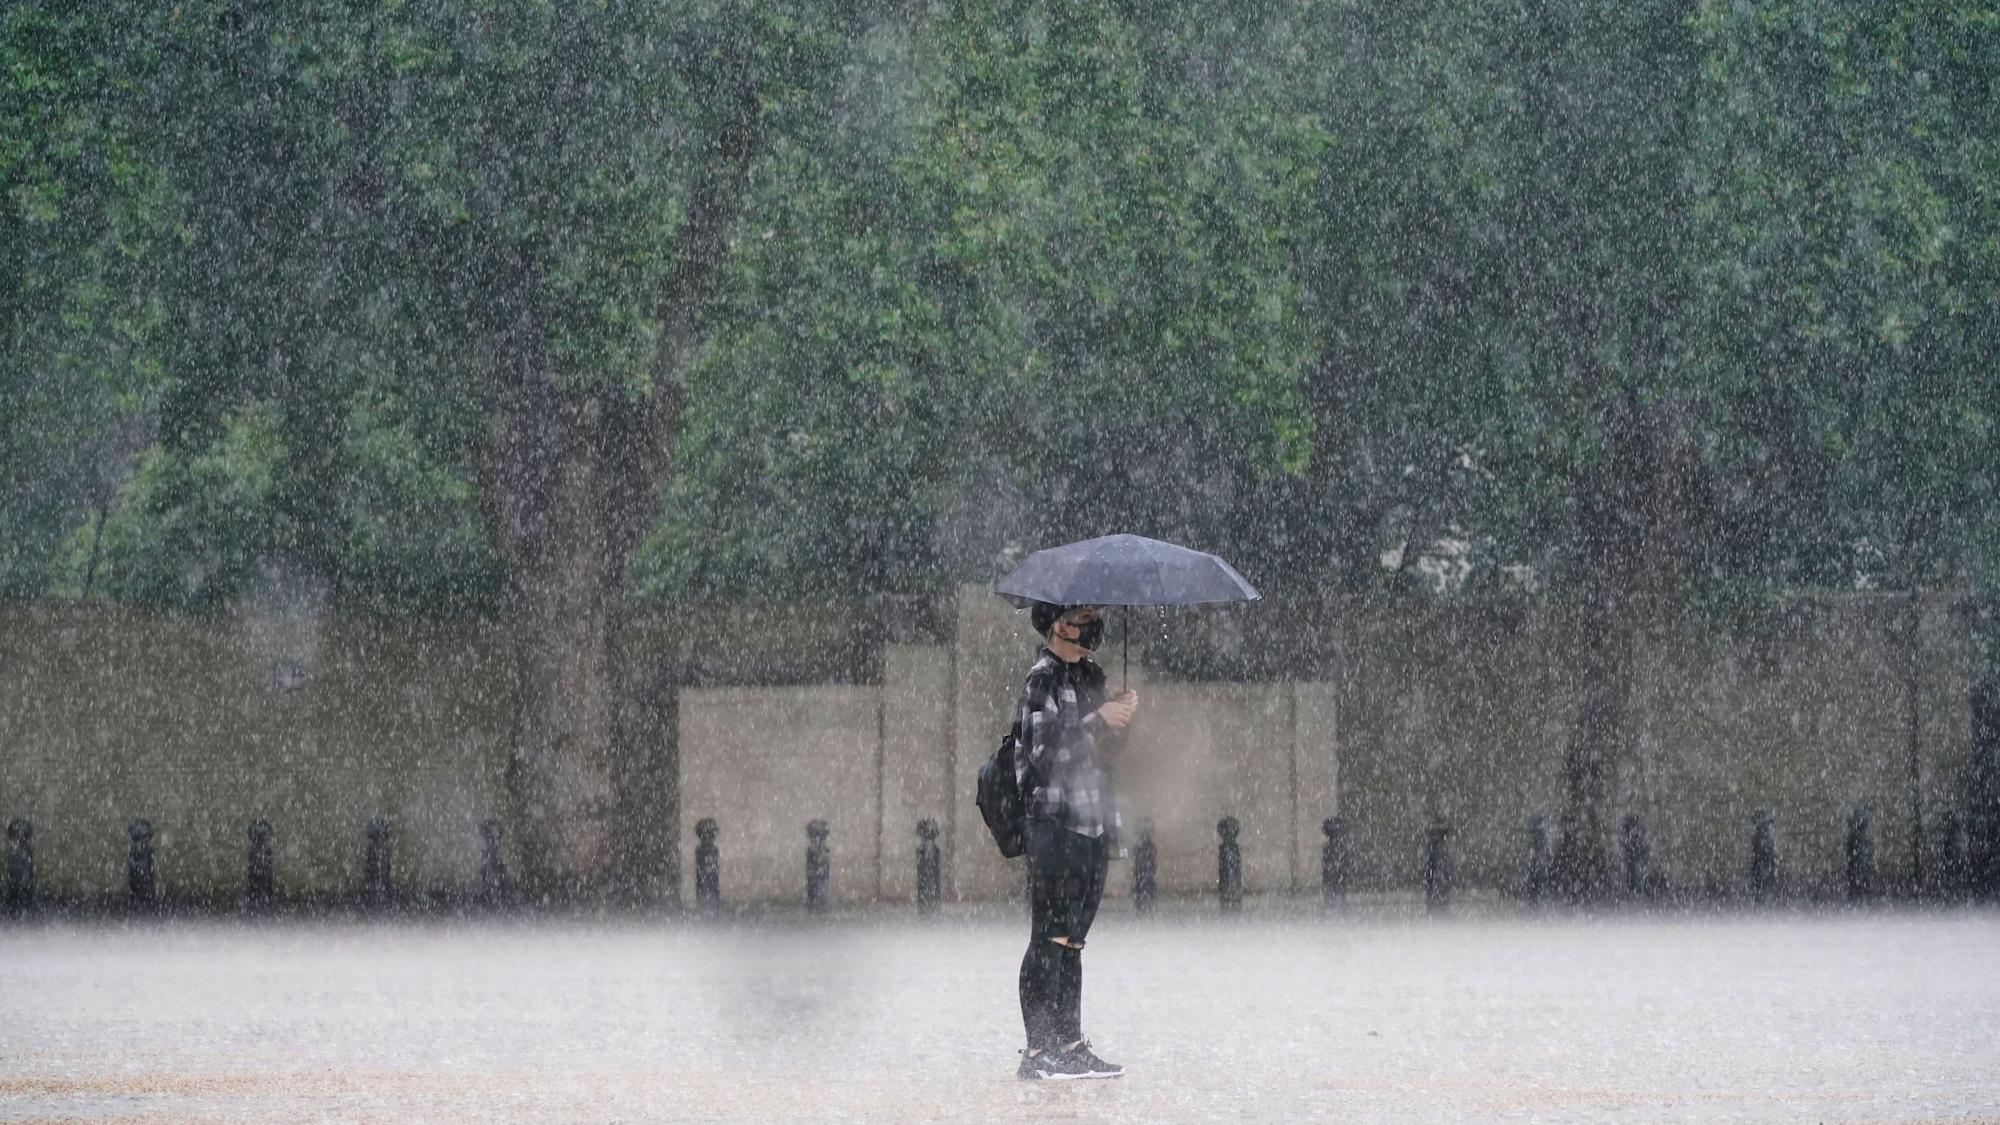 More storms on the way after almost a month's worth of rain falls in a day